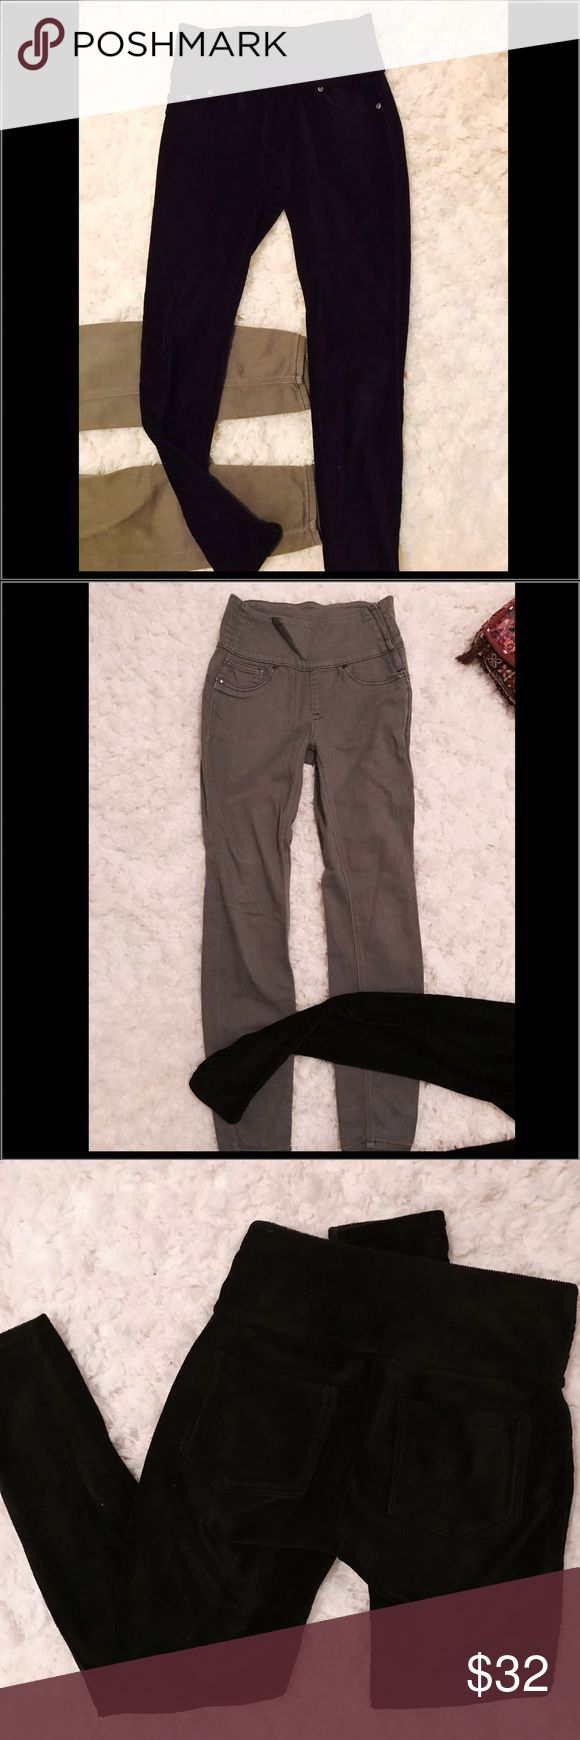 SPANX pants BUNDLE 2 pair of SPANX the black pair is soft corduroy stretchy jeggings and the grey pair is more like skinny jeans high waisted stretchy both pre owned in good condition SPANX Pants Skinny